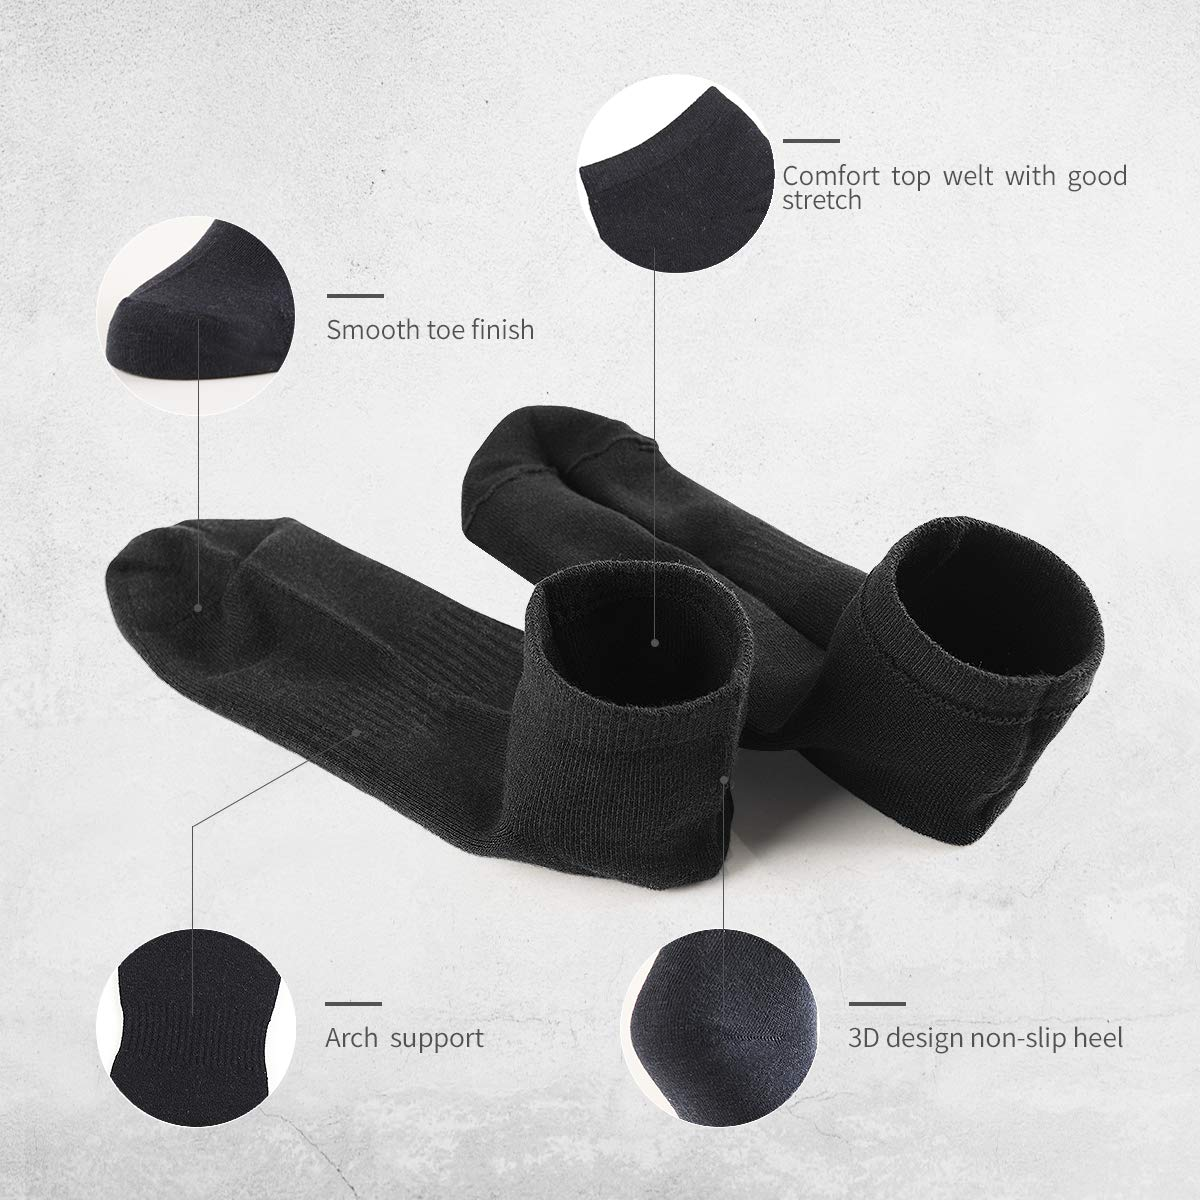 One Size Breathable Fit for Office and Outdoor Sports SOXTOWN Womens Athletic Cotton Socks -10 Pairs No Show Black Socks Arch Support